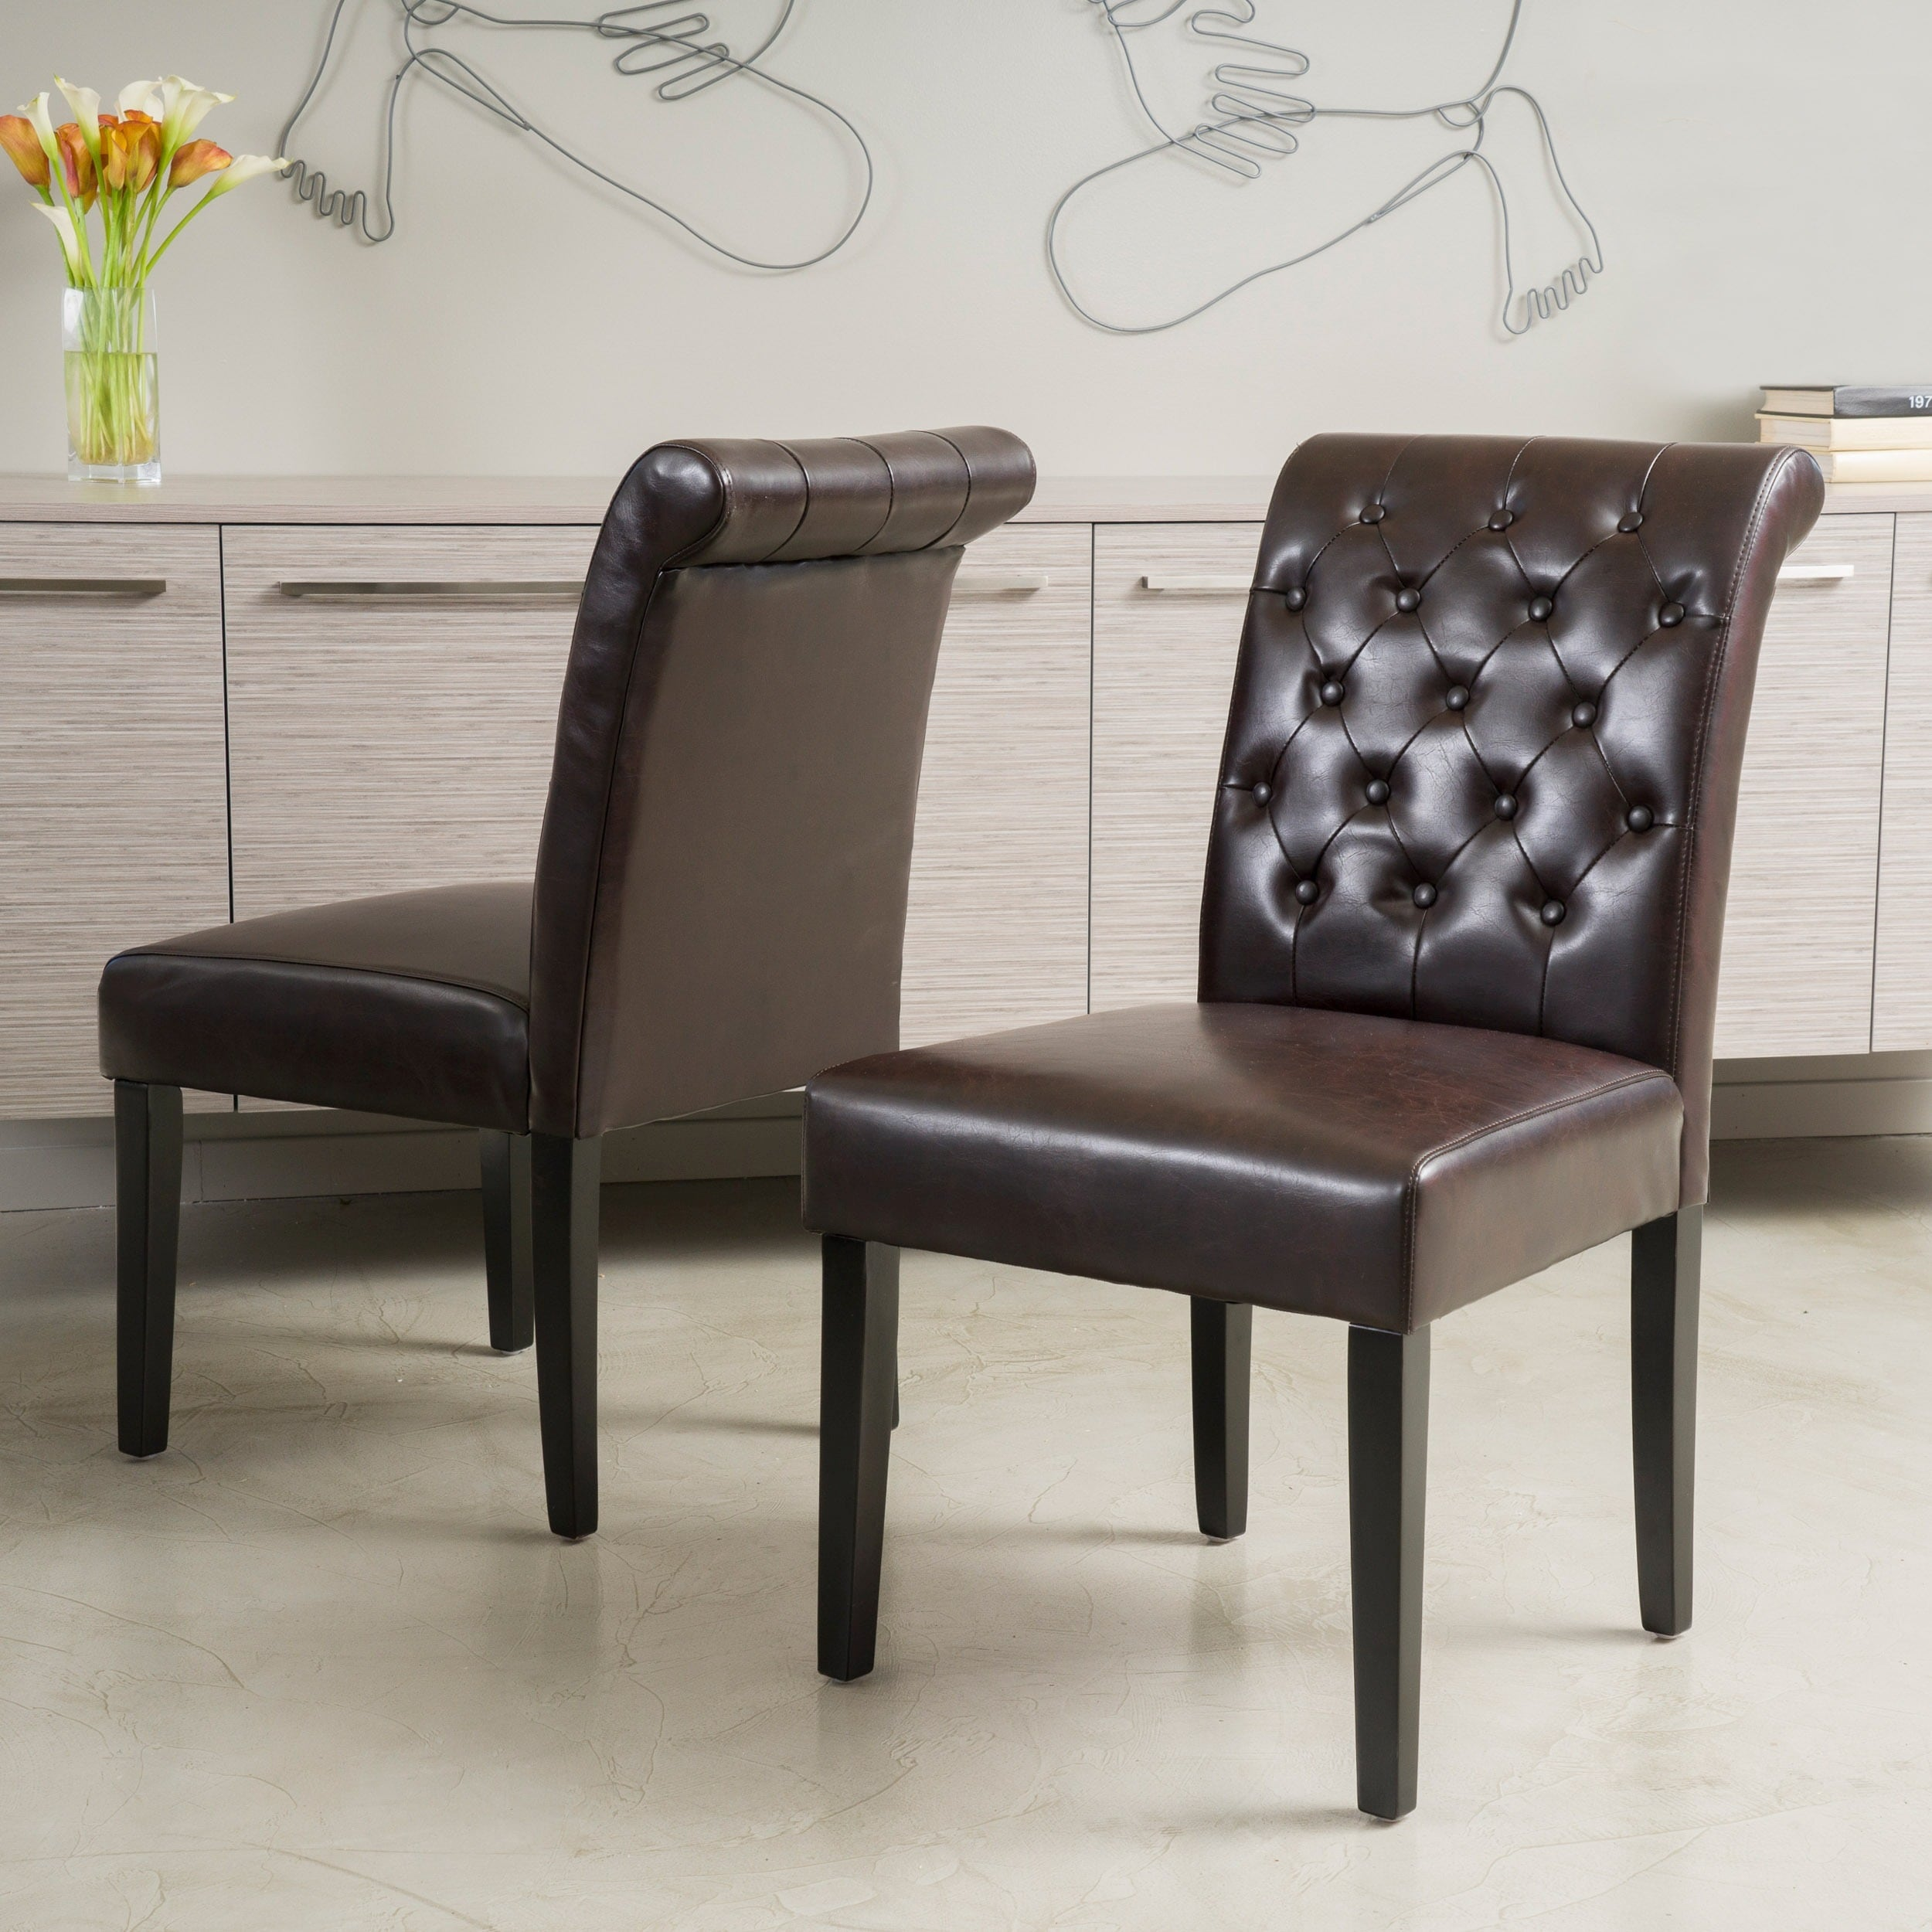 Palermo Brown Bonded Leather Tufted Dining Chair Set Of 2 By